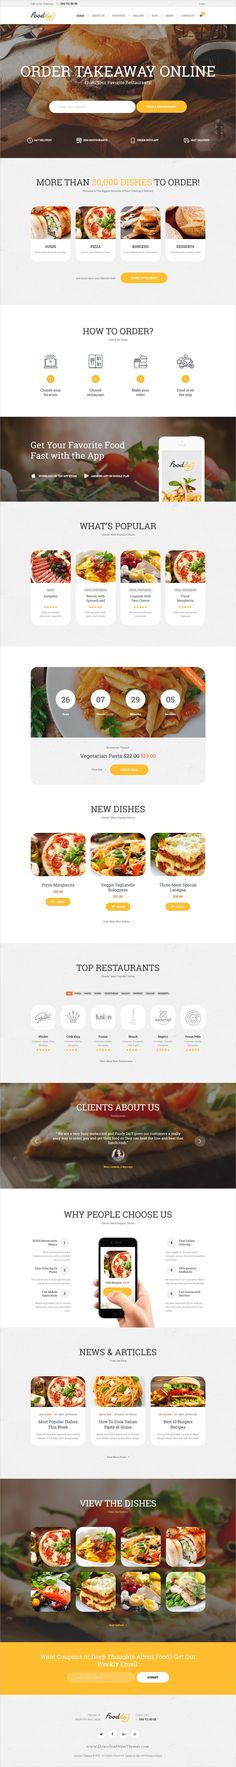 Fooddy 24/7 is a stylish and powerful #WordPress theme for online #food ordering and food #delivery website or application download now➩ https://themeforest.net/item/fooddy-247-food-ordering-delivery-theme/19731095?ref=Datasata